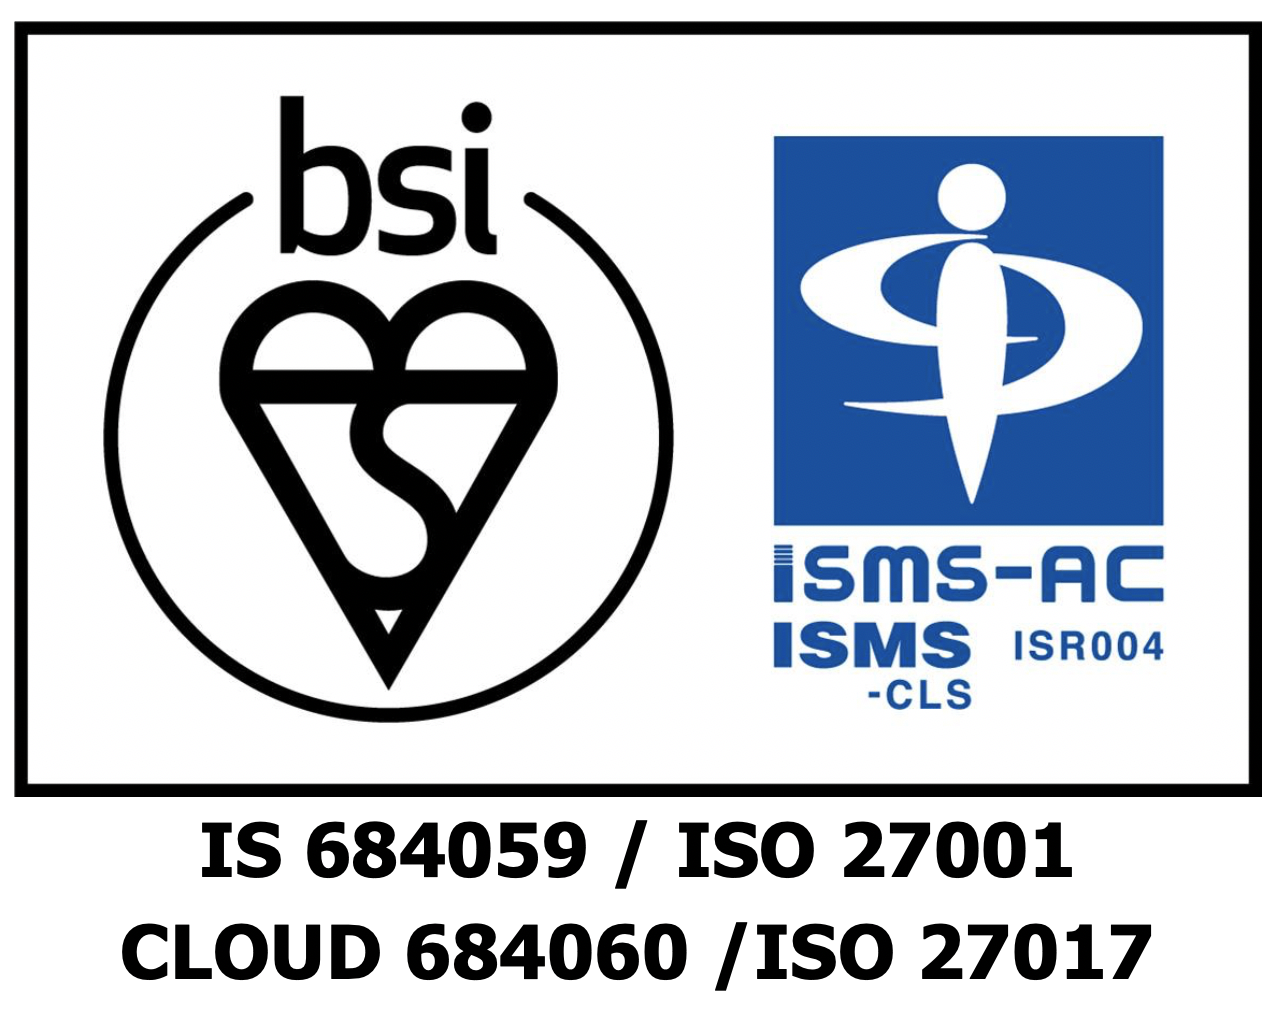 CLOUD 684060 / ISO 27017; IS 684059/ ISO 27001